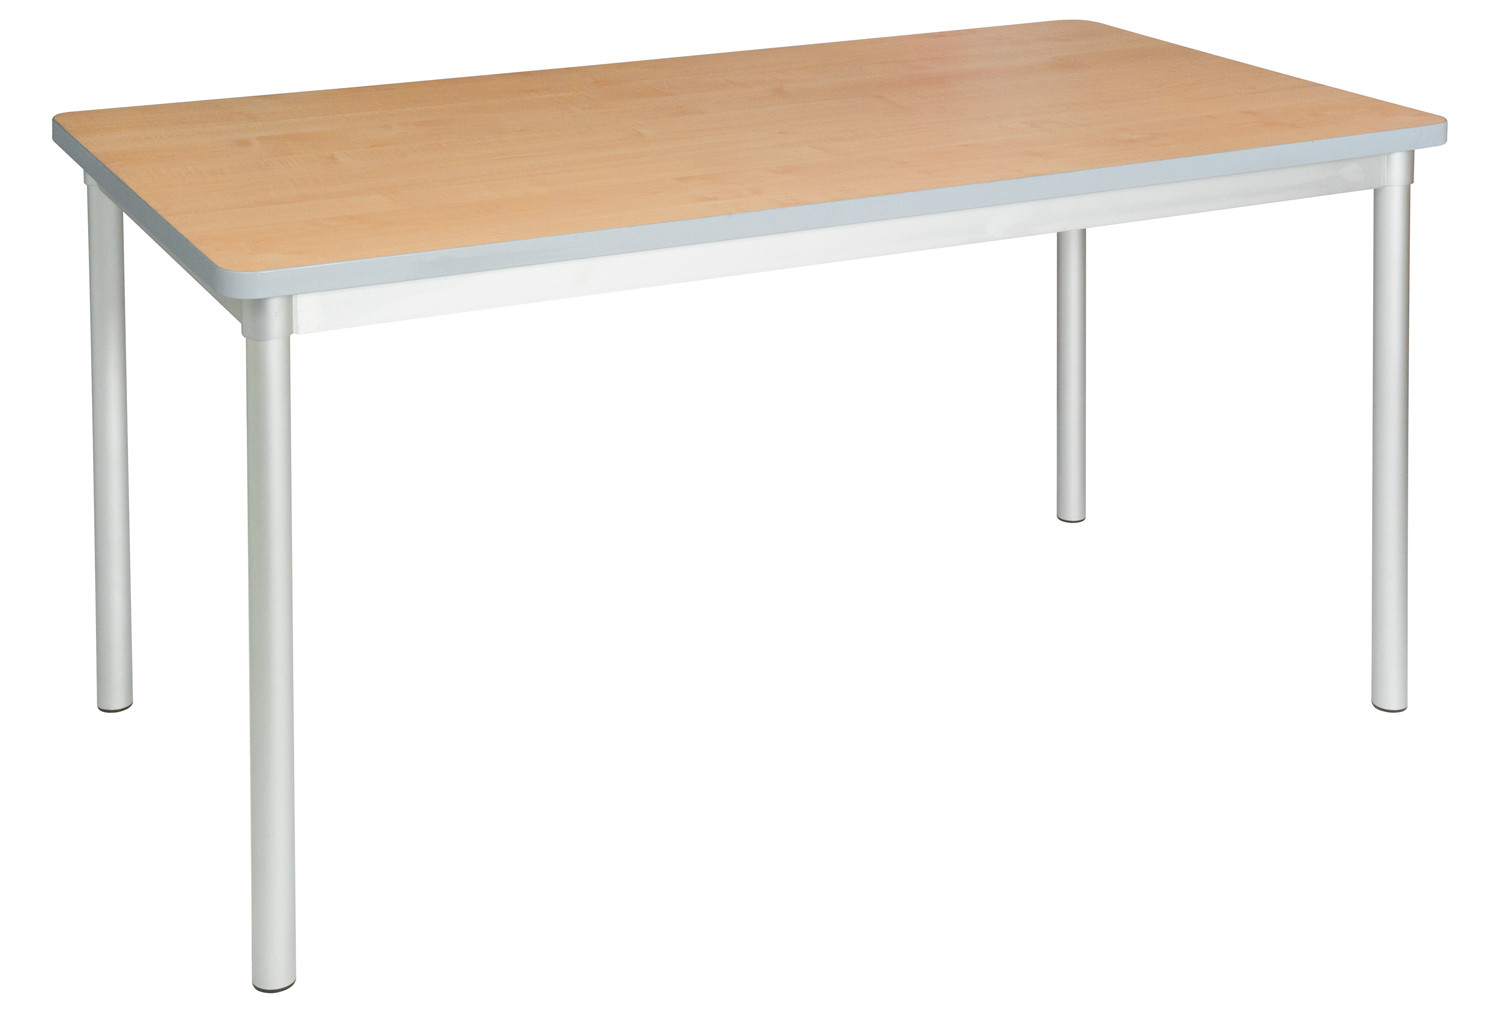 Gopak enviro rectangular tables